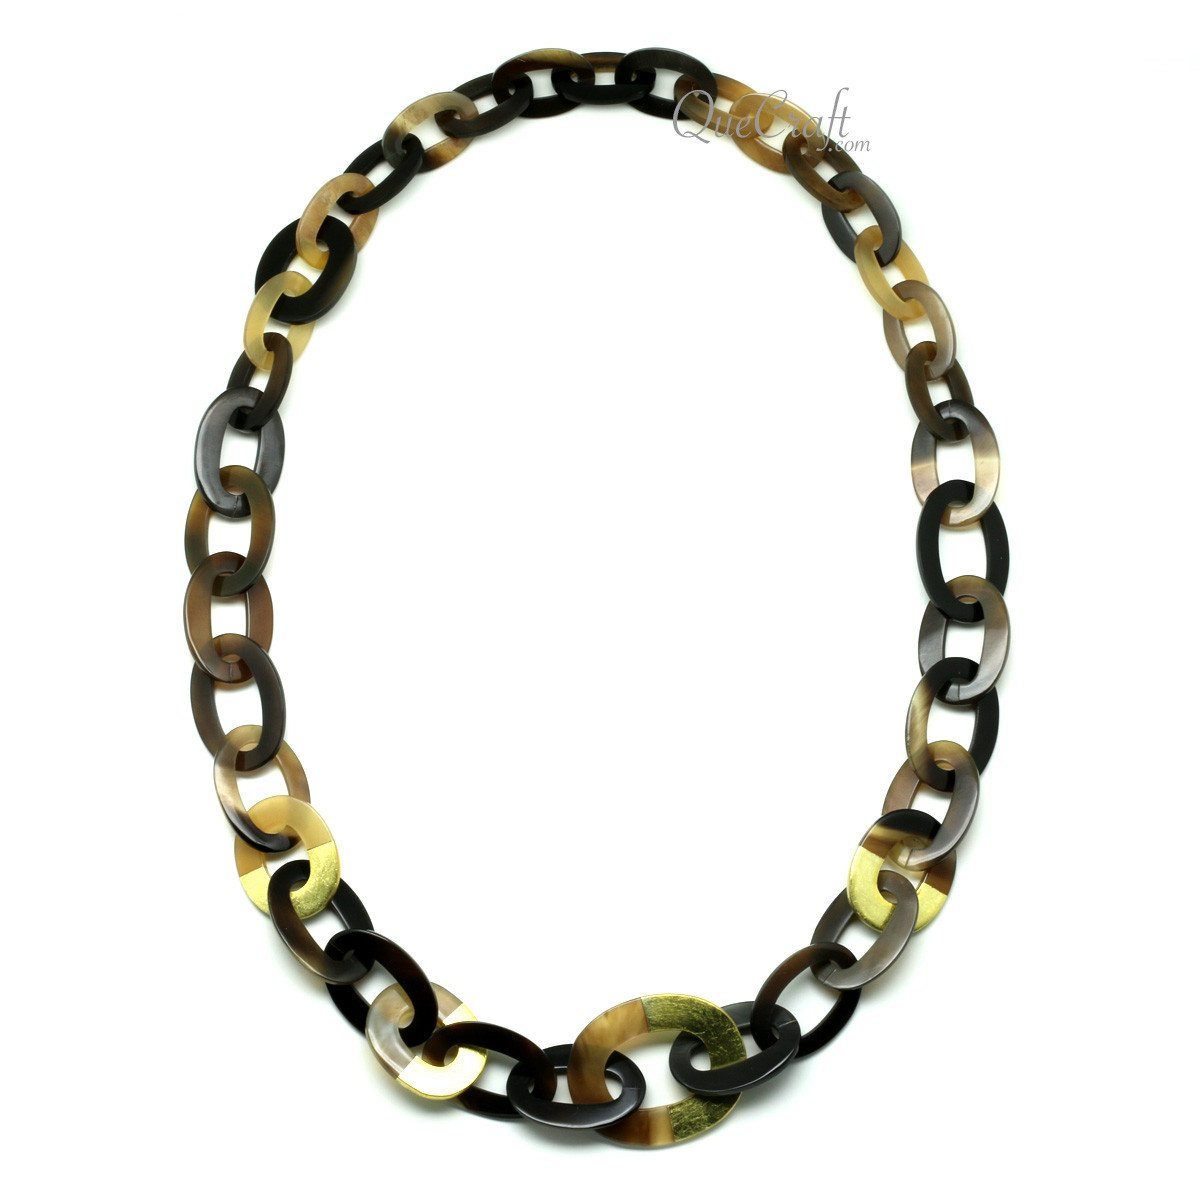 Horn & Lacquer Chain Necklace #11984 - HORN.JEWELRY